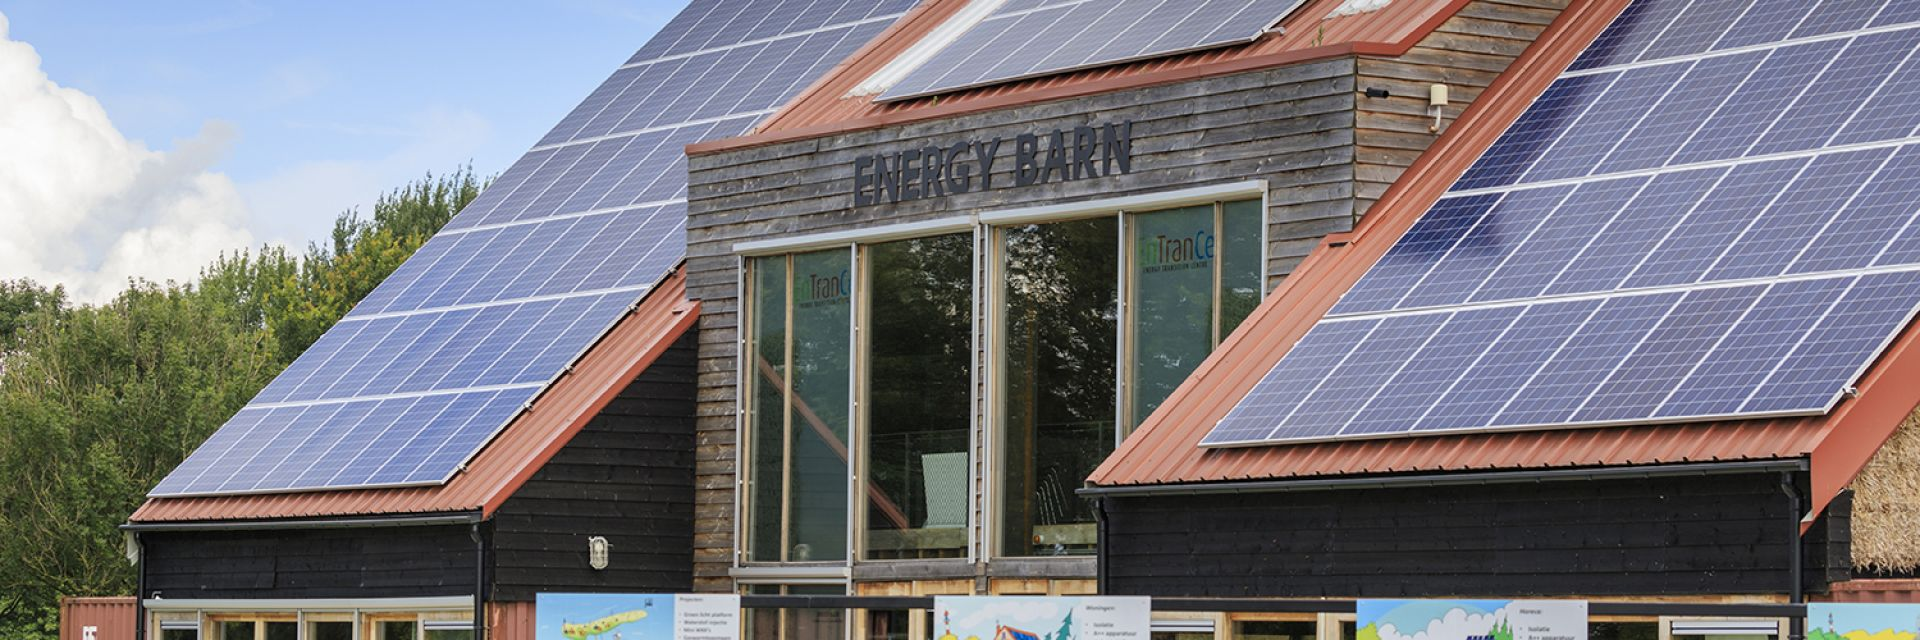 Barn Talk. How Iceland embraces geothermal energy